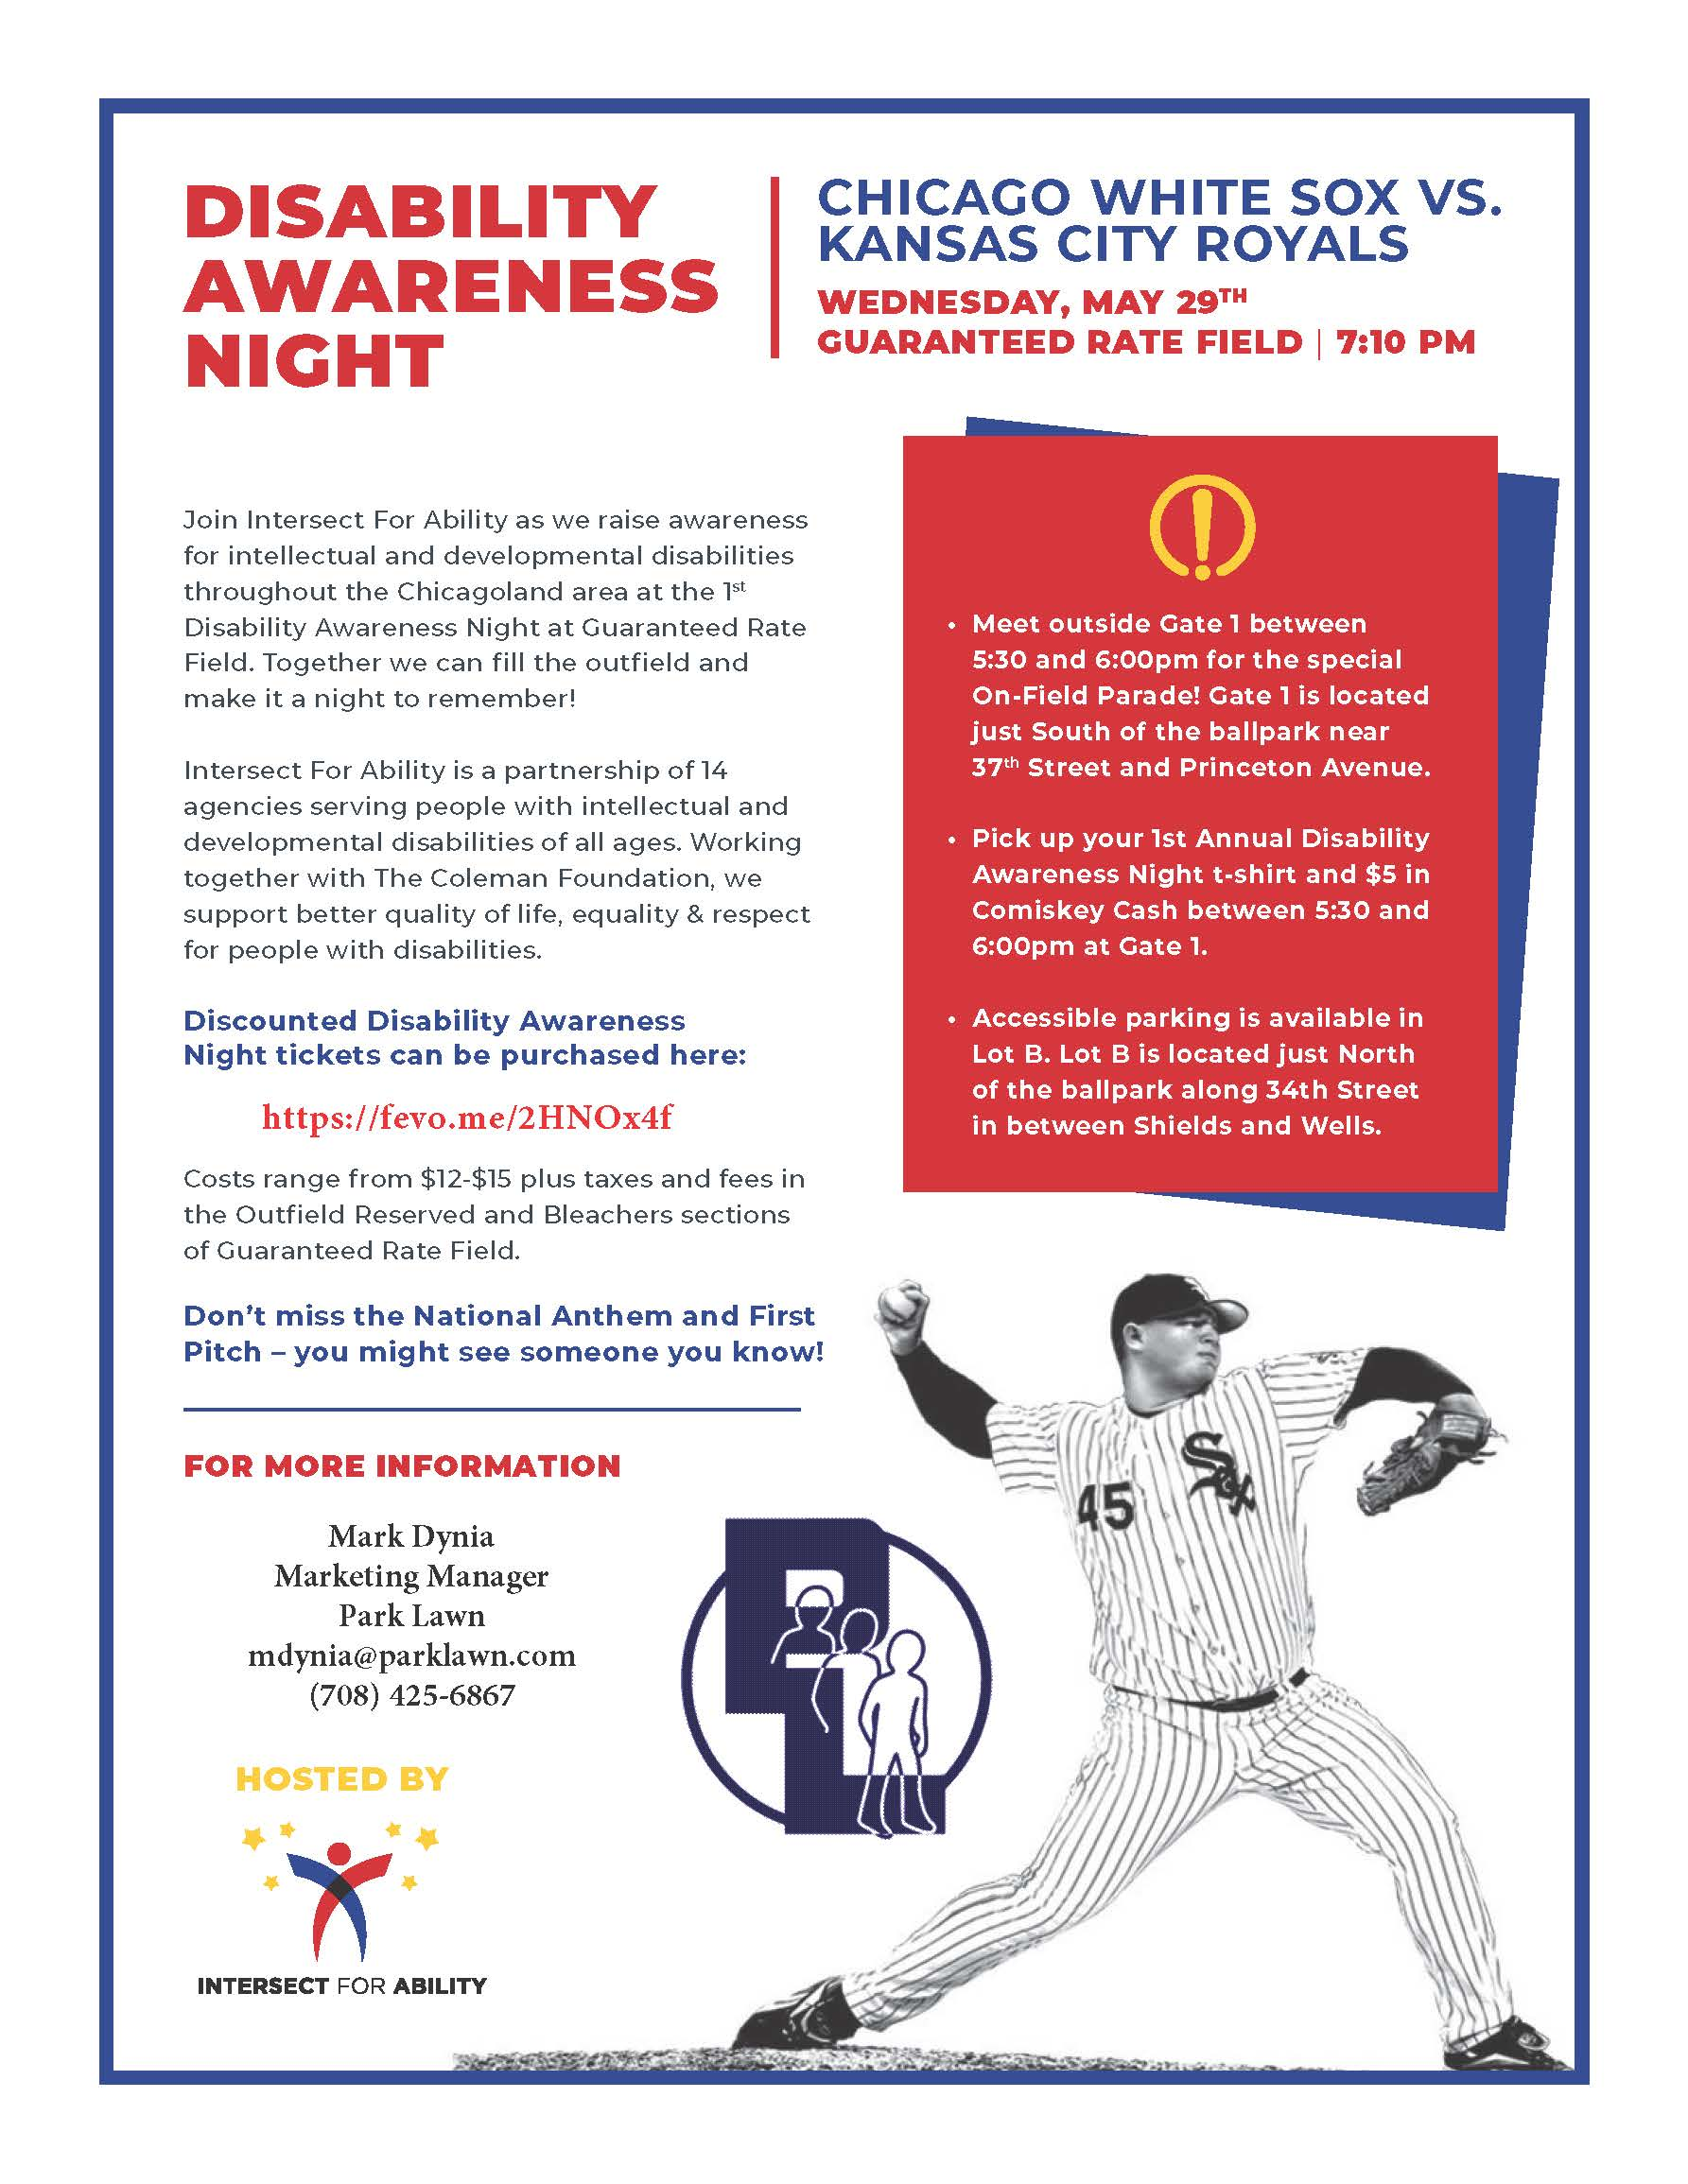 Developmental Disabilities Awareness Night with the White Sox